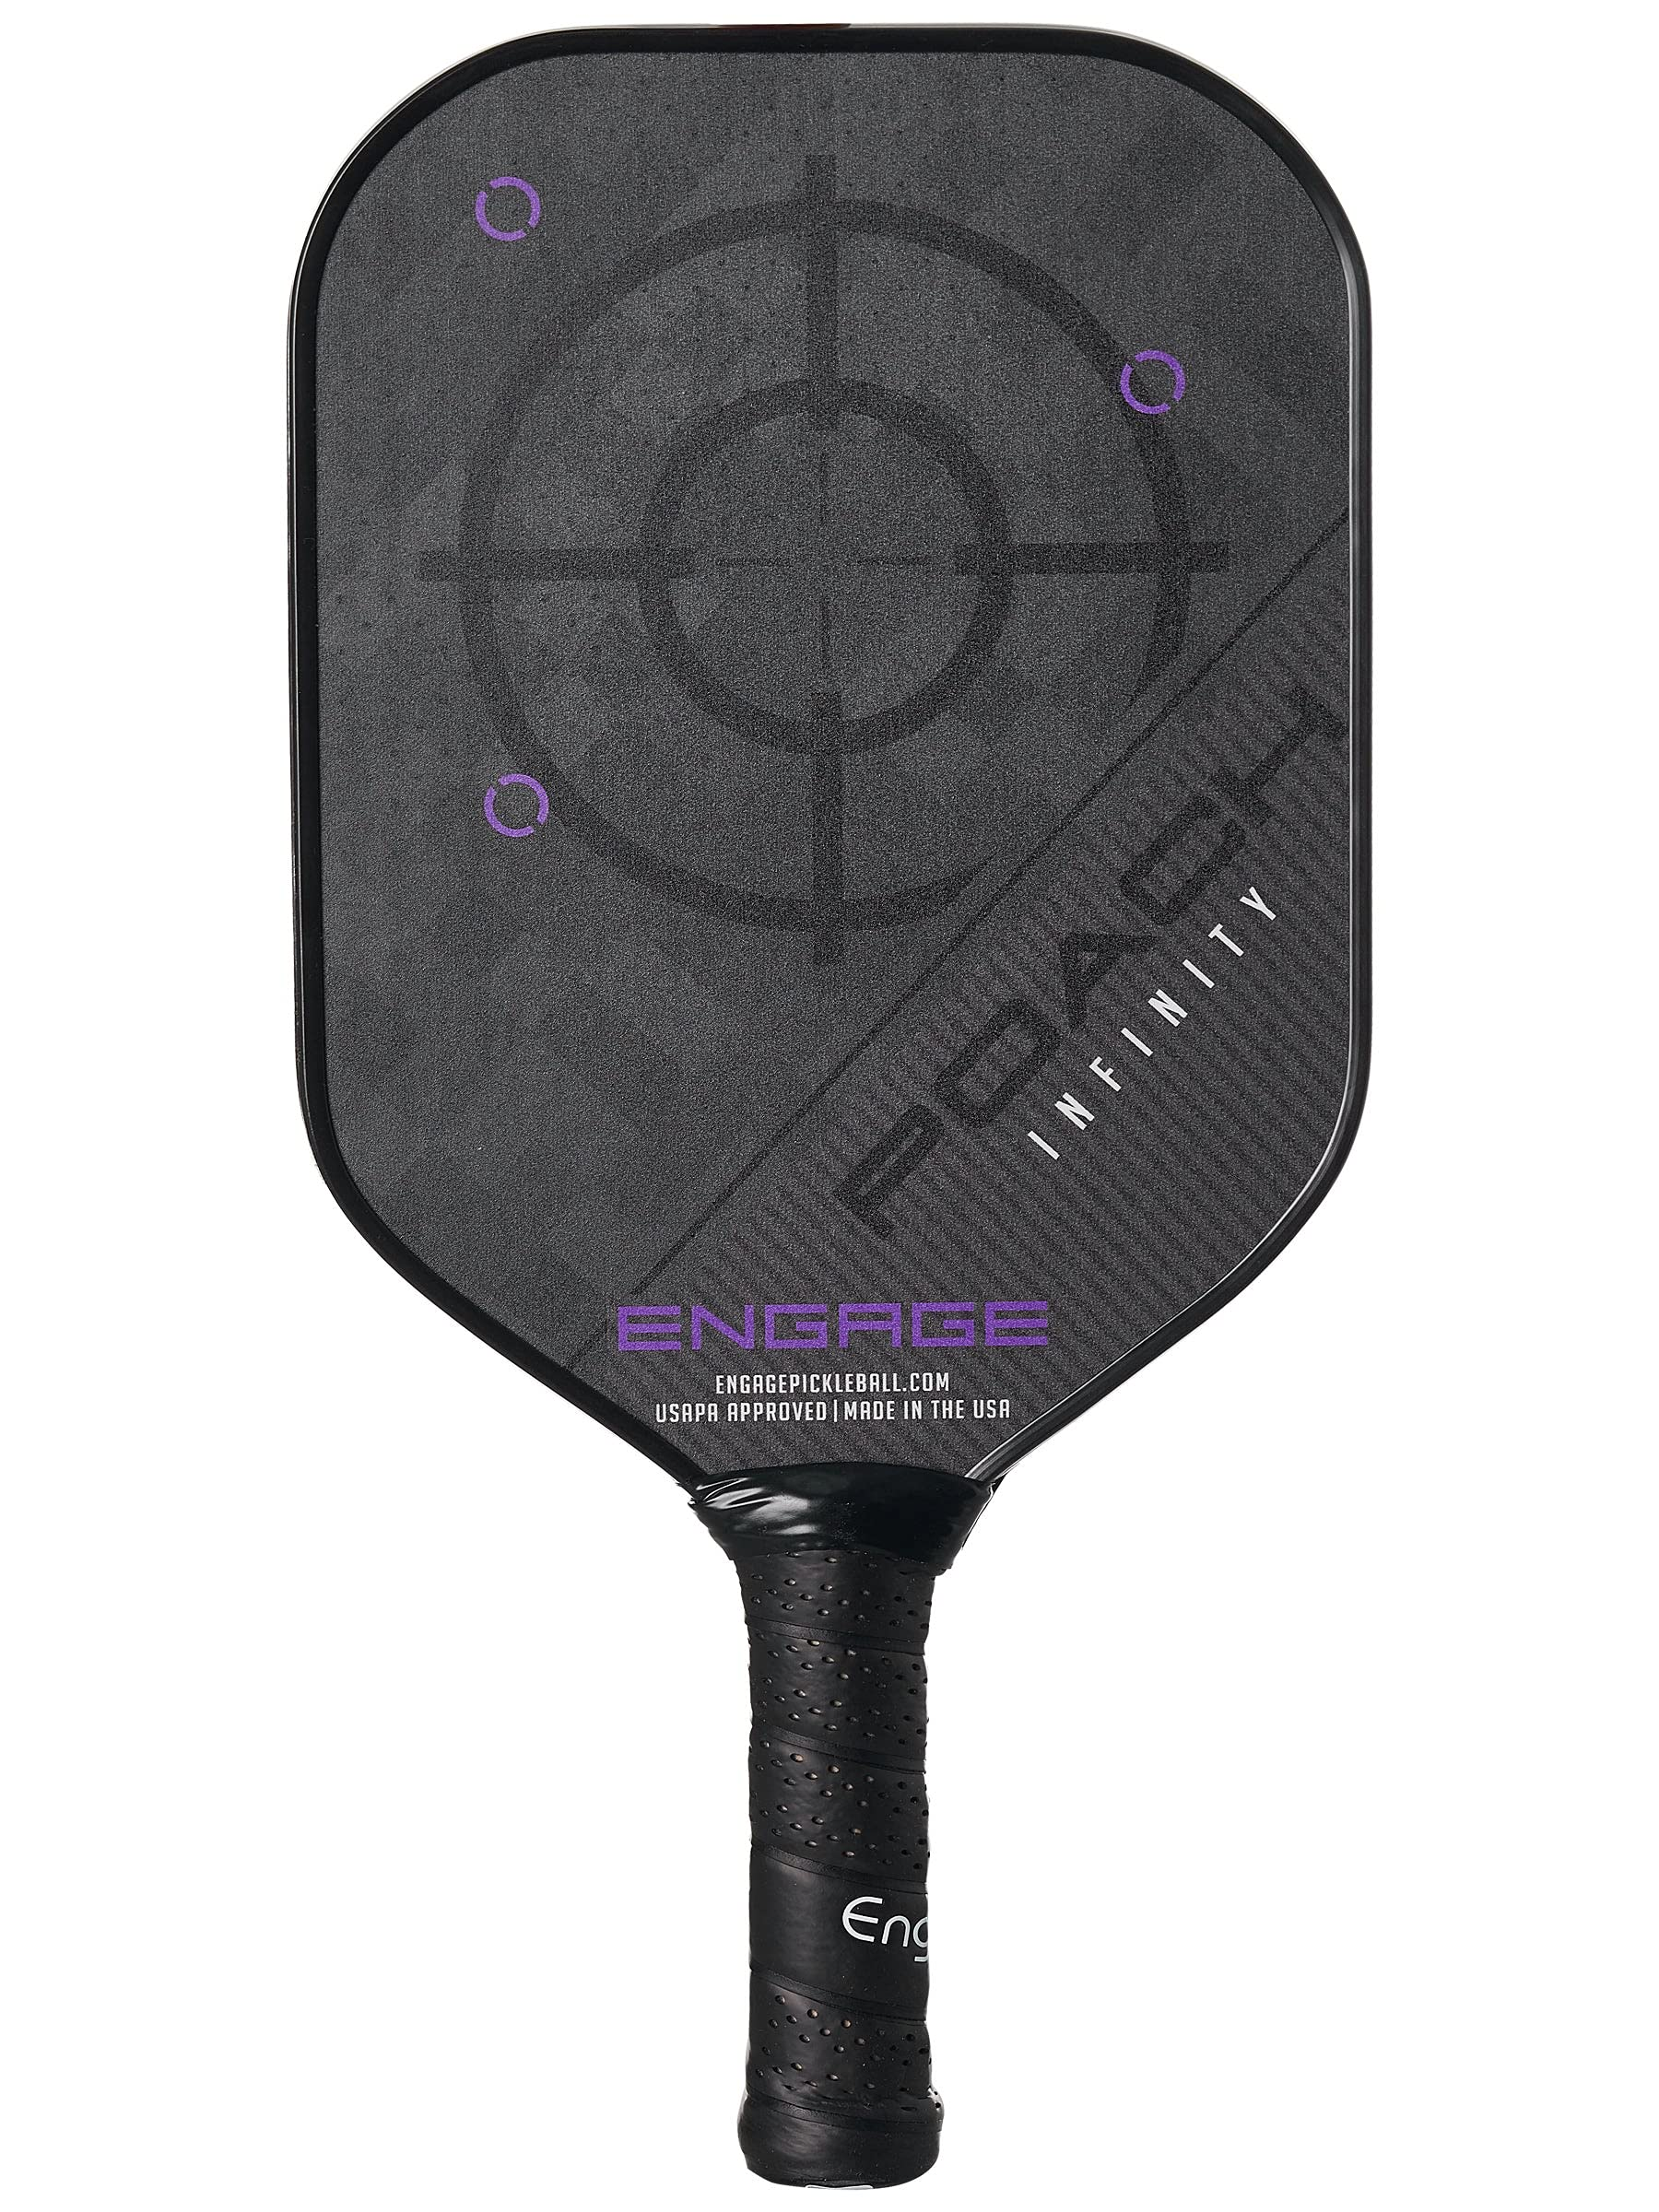 Engage Pickleball Poach Infinity The Second Generation -XQ87